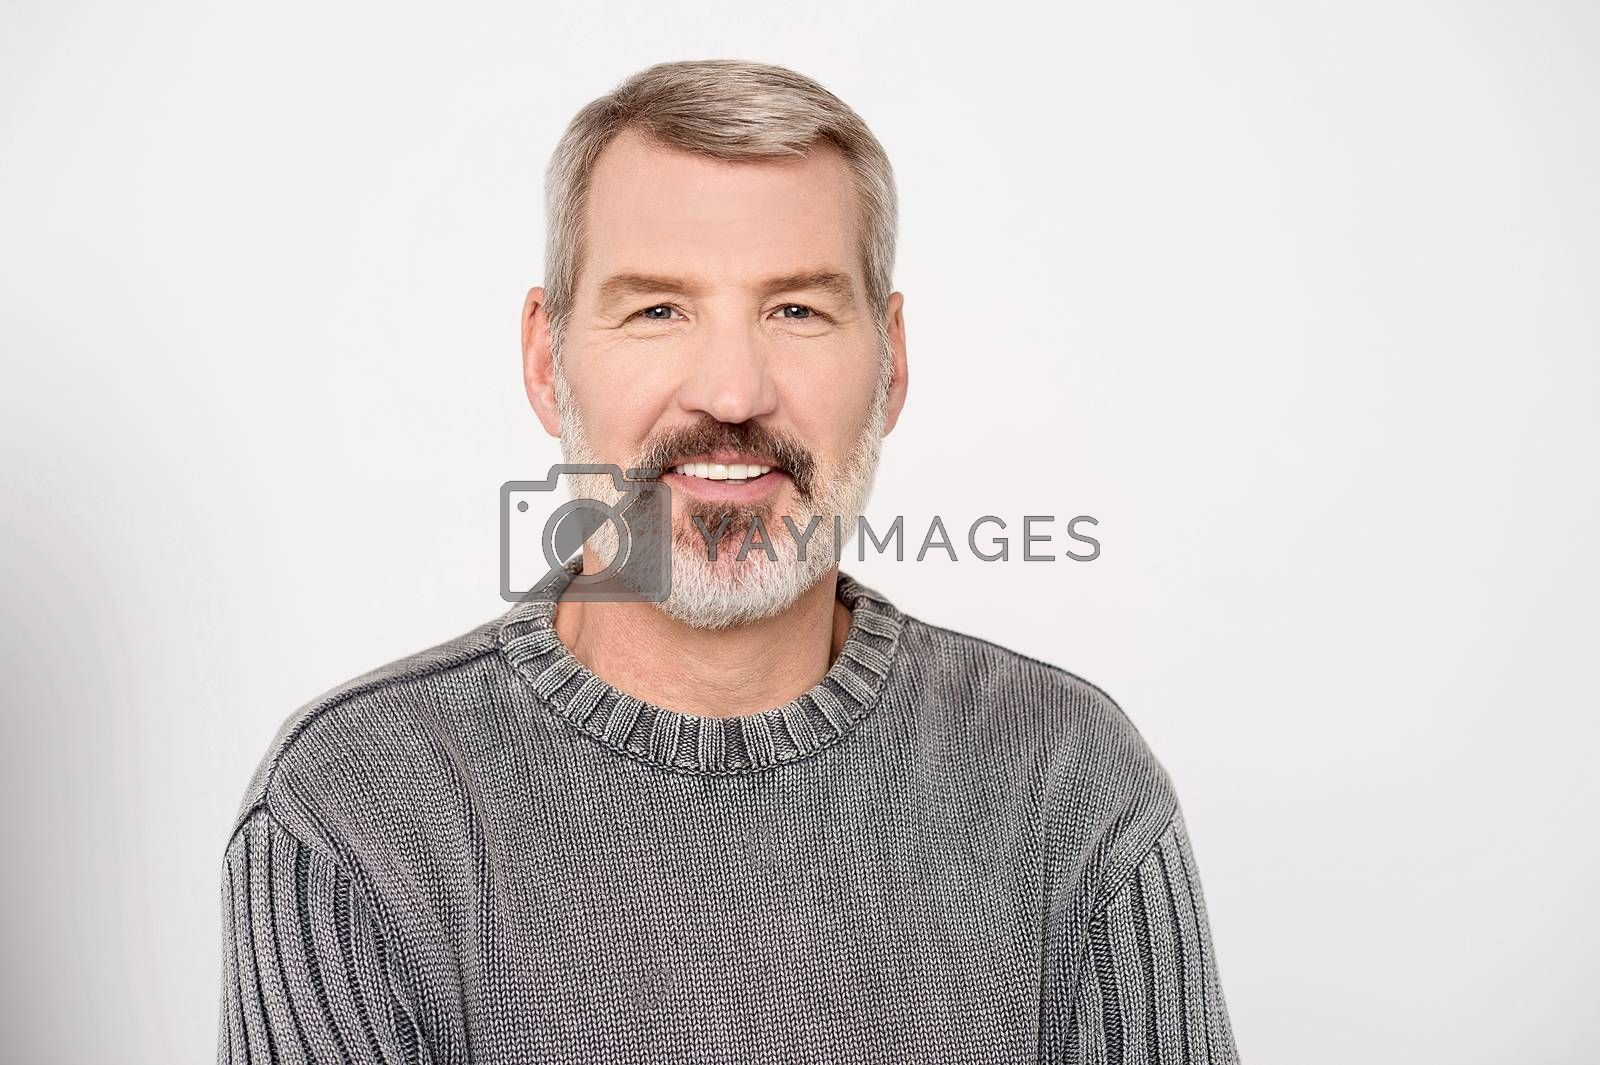 Elderly man posing casually to camera on grey background